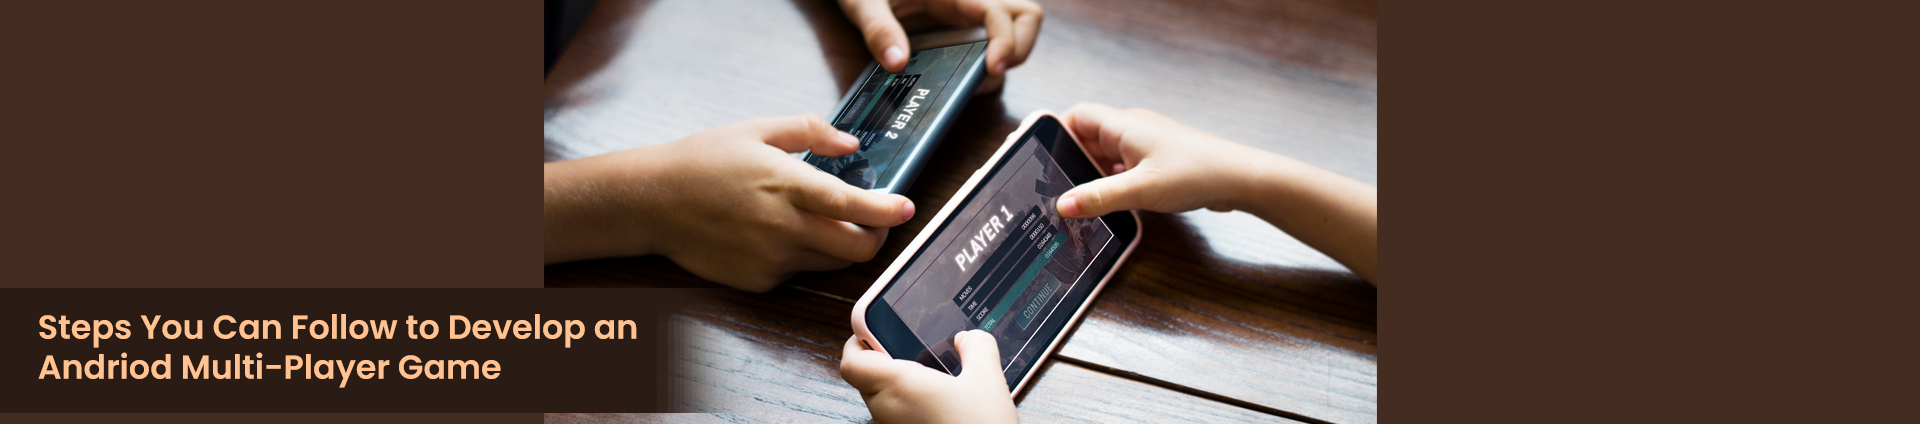 Two People Playing a Multi-Player Game on Two Different Phones